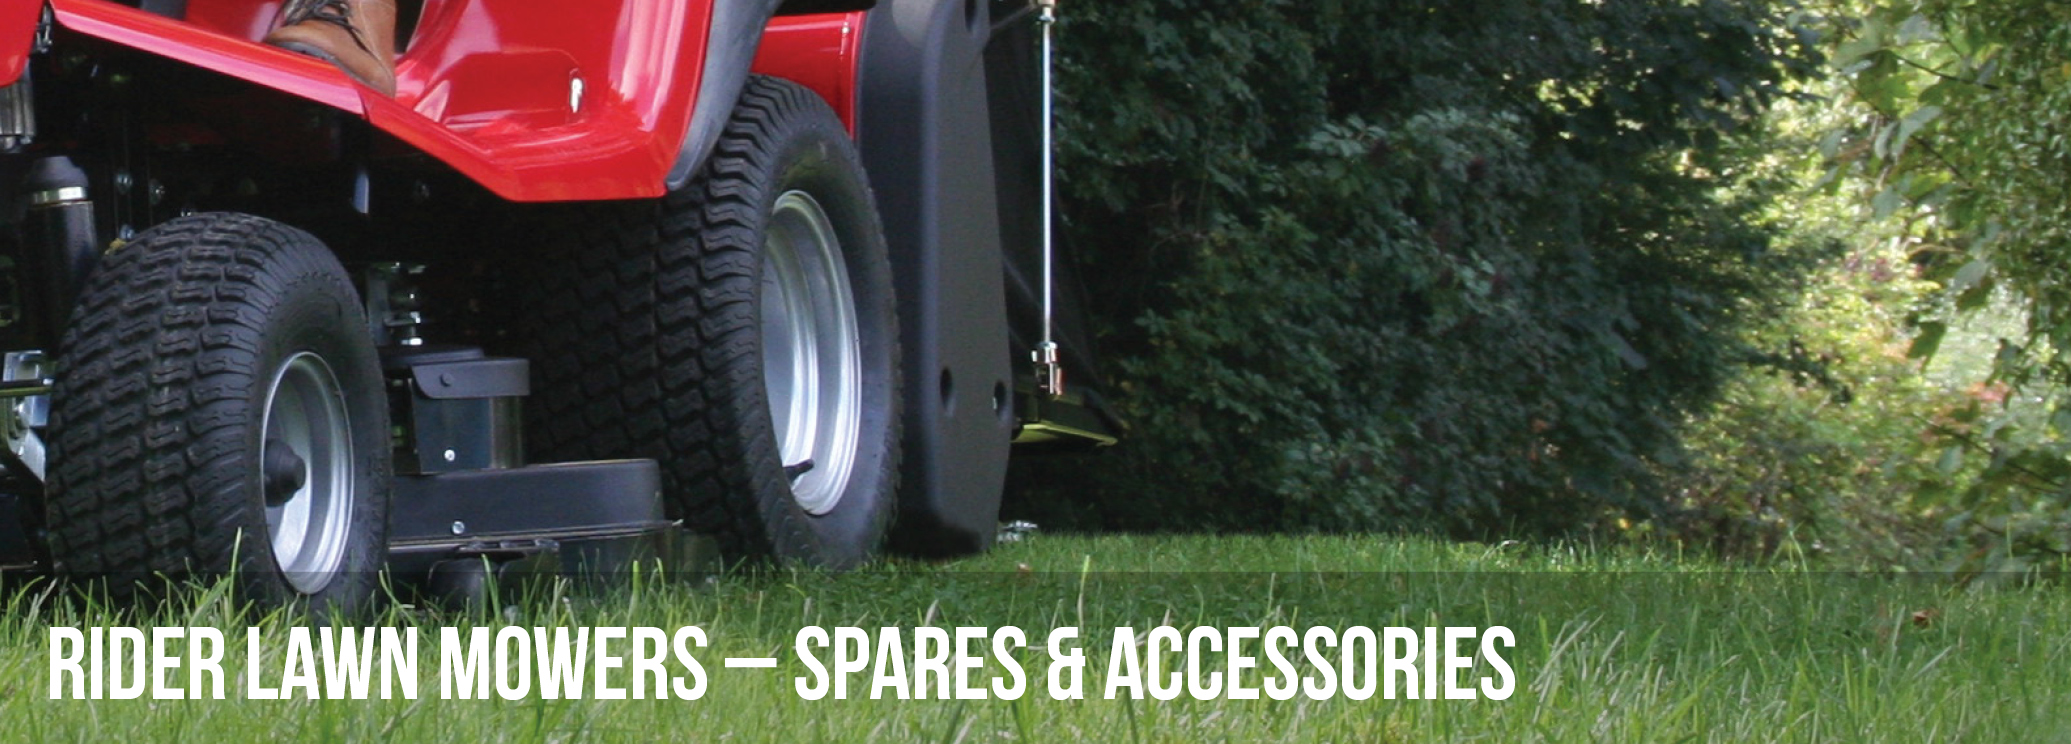 category_top_lawnmowers_rider_spares